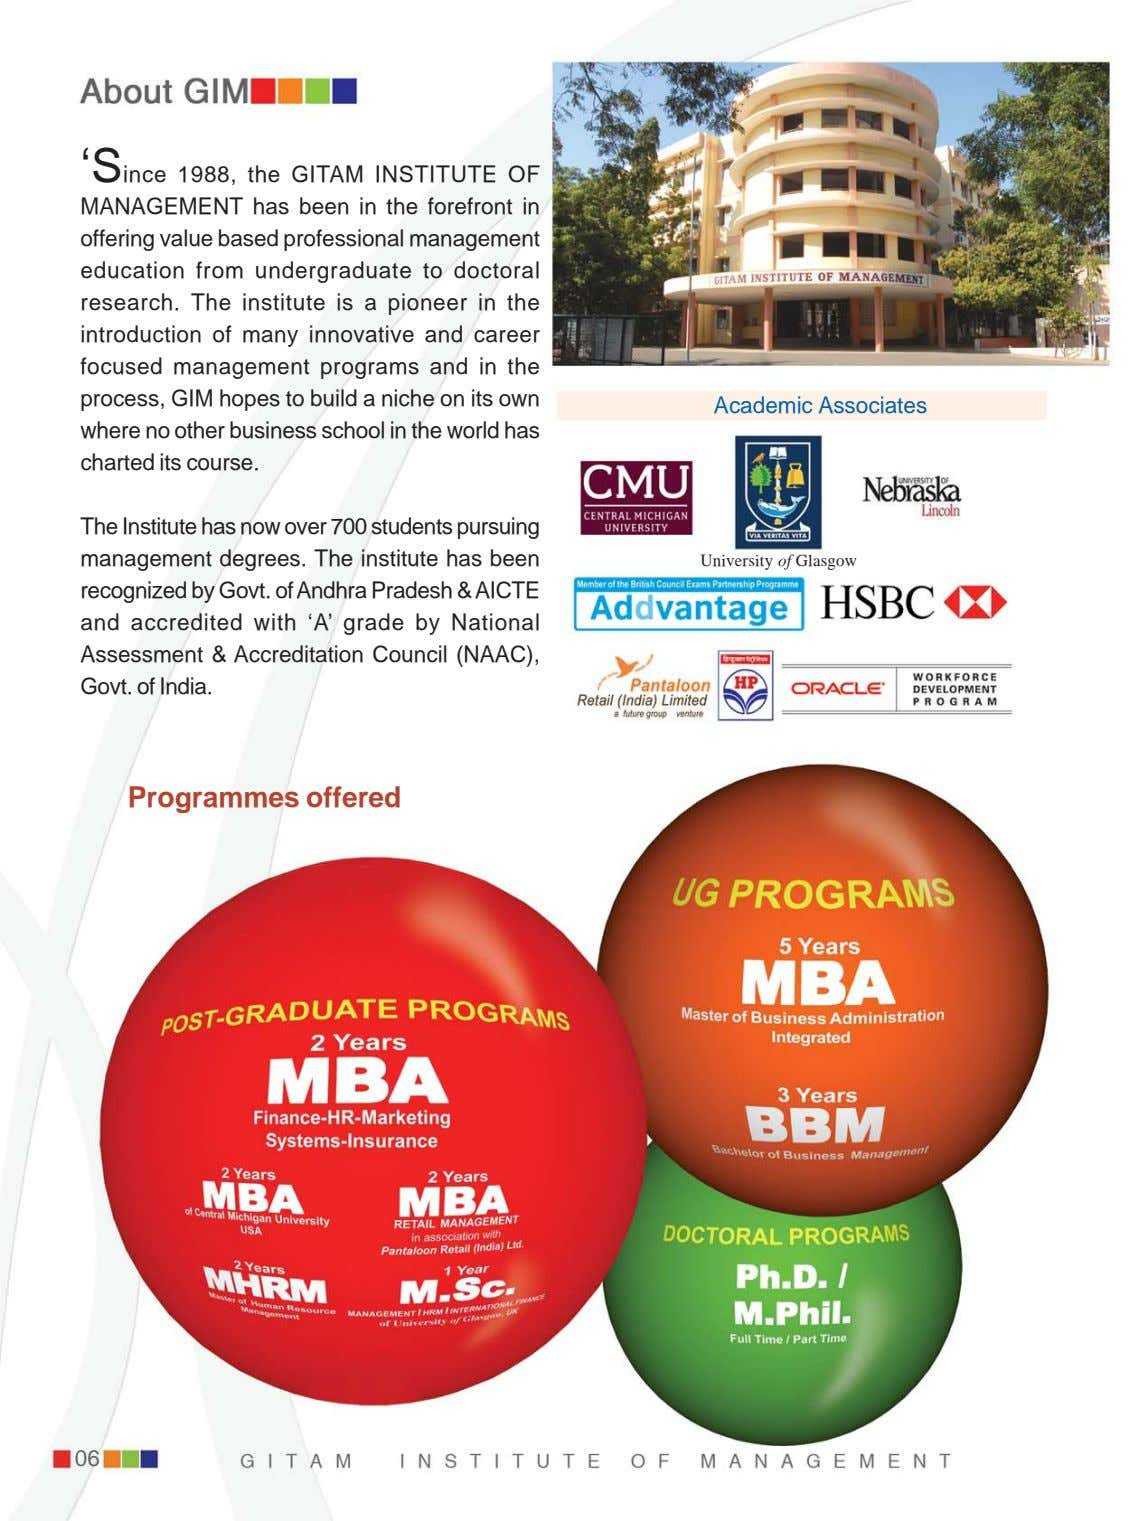 'Since 1988, the GITAM INSTITUTE OF MANAGEMENT has been in the forefront in offering value